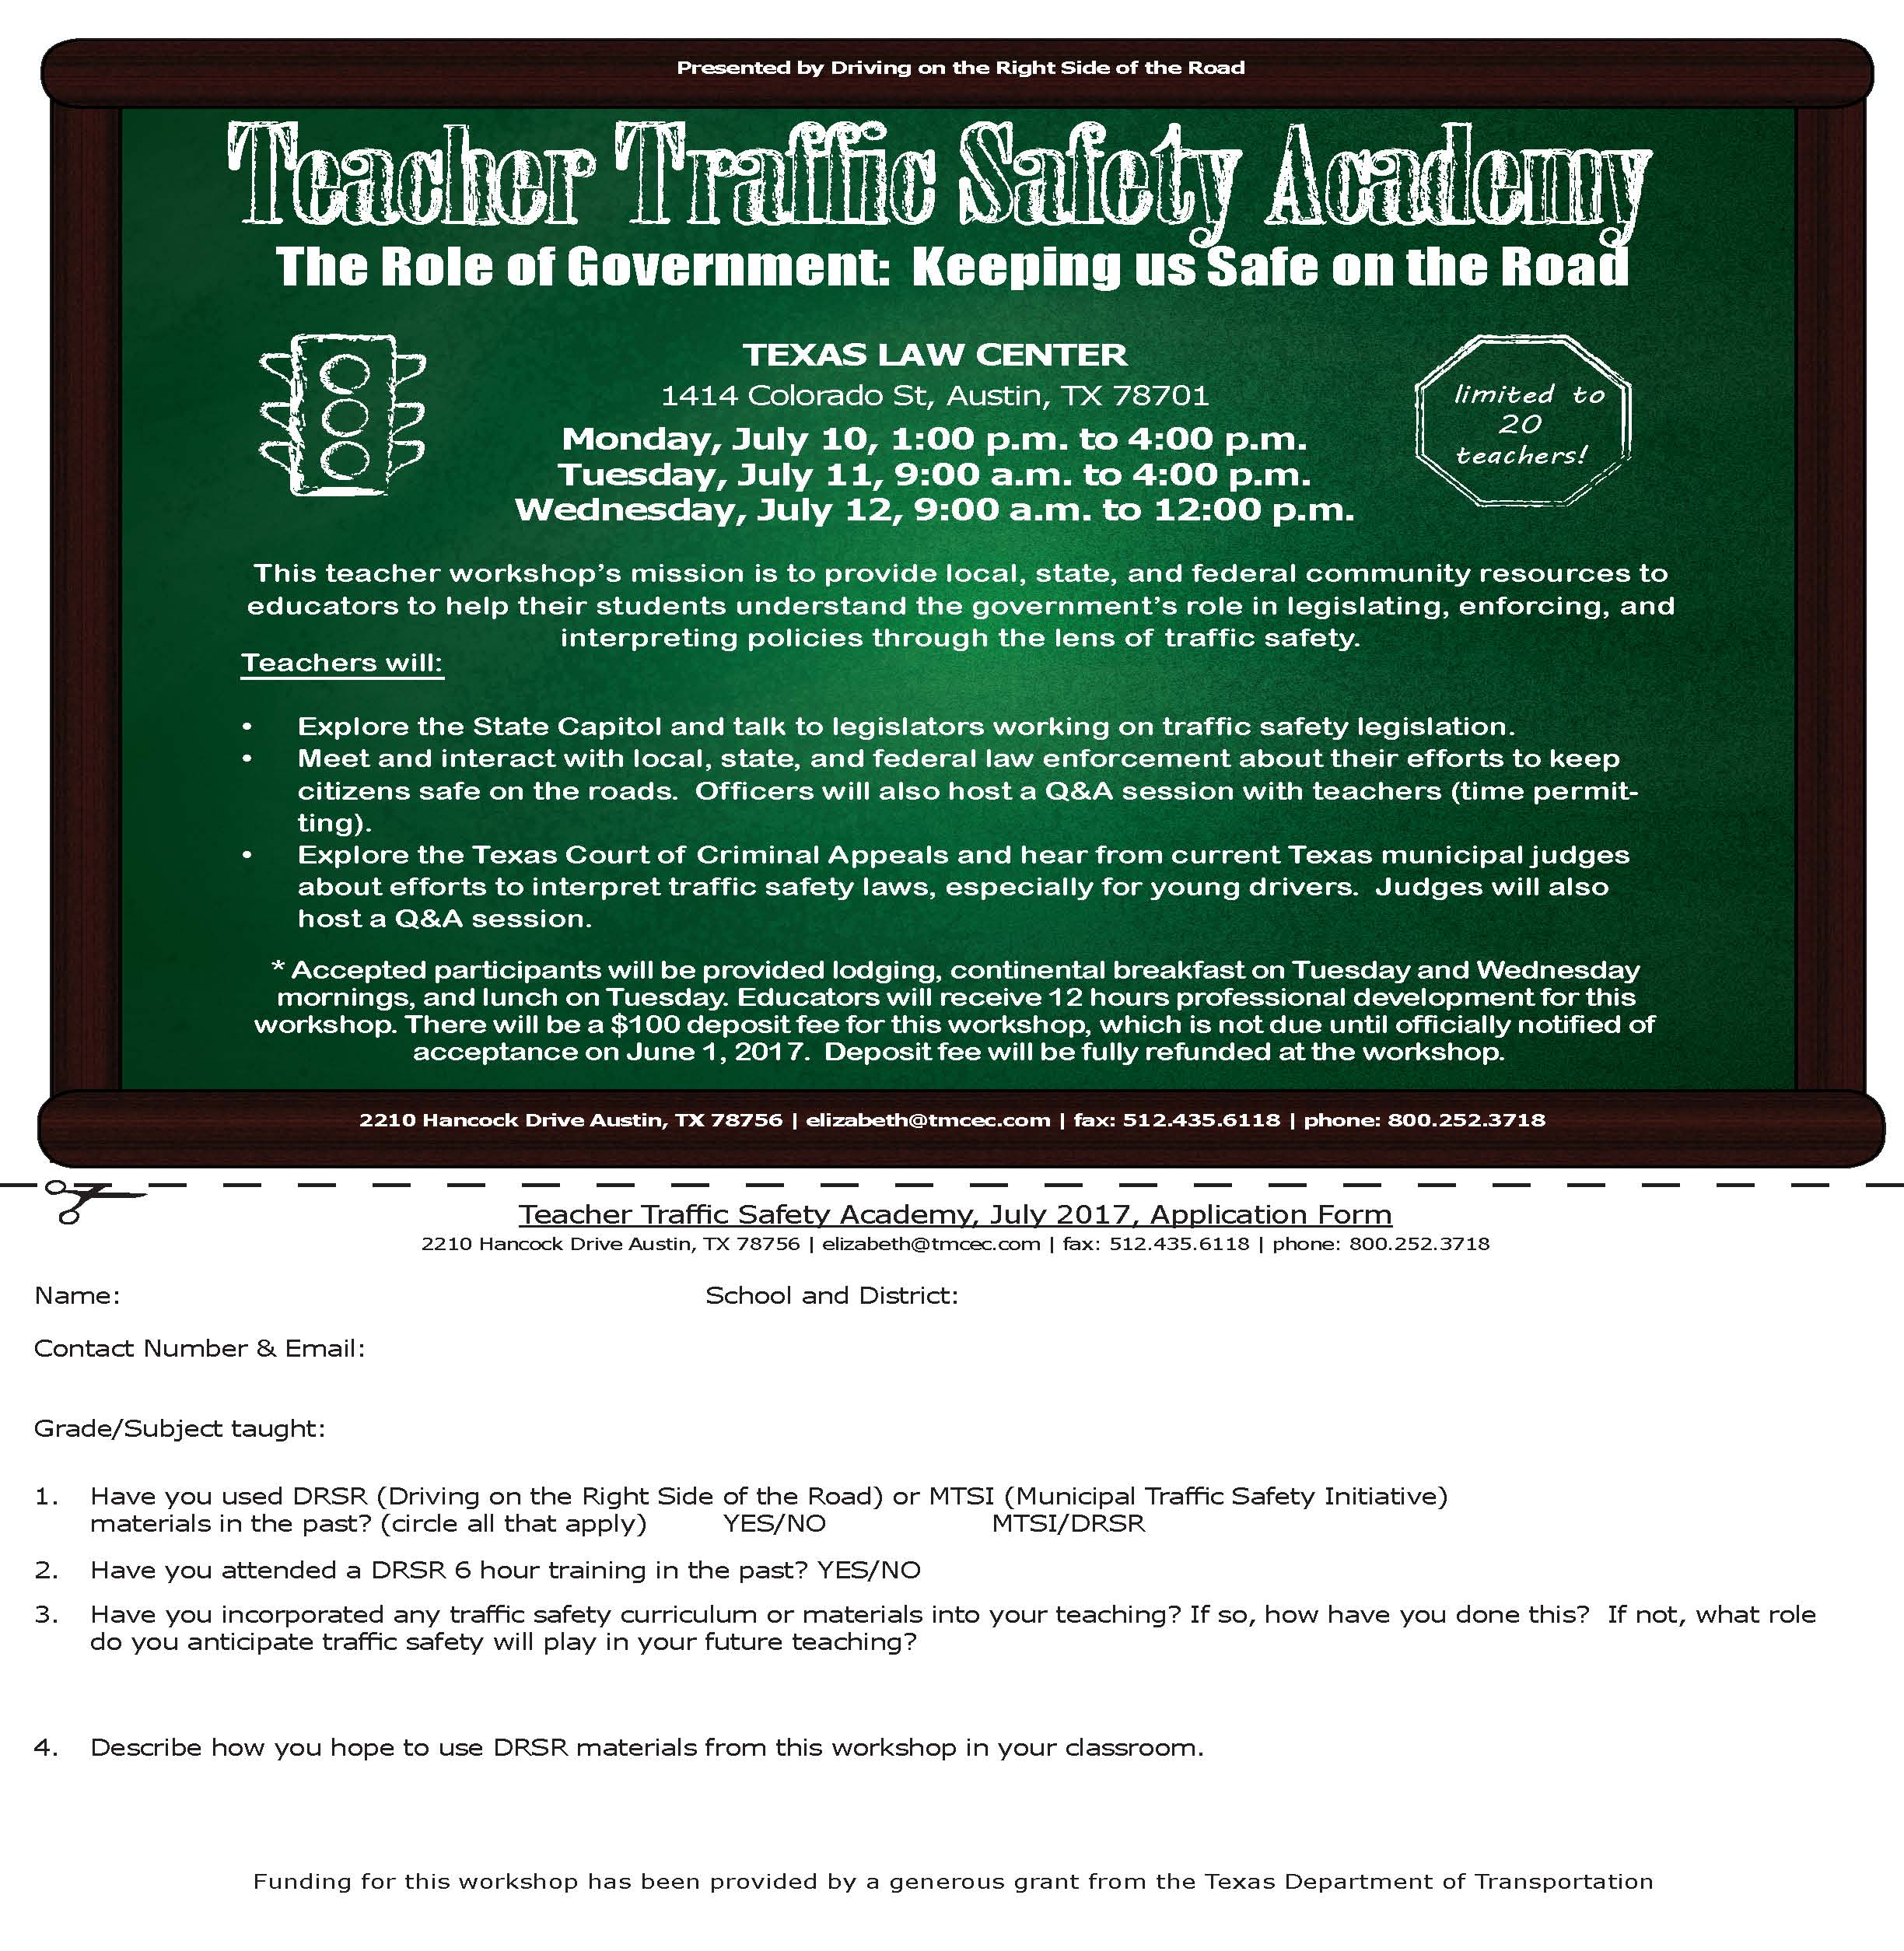 Teacher Traffic Safety Academy Application 2016.jpg